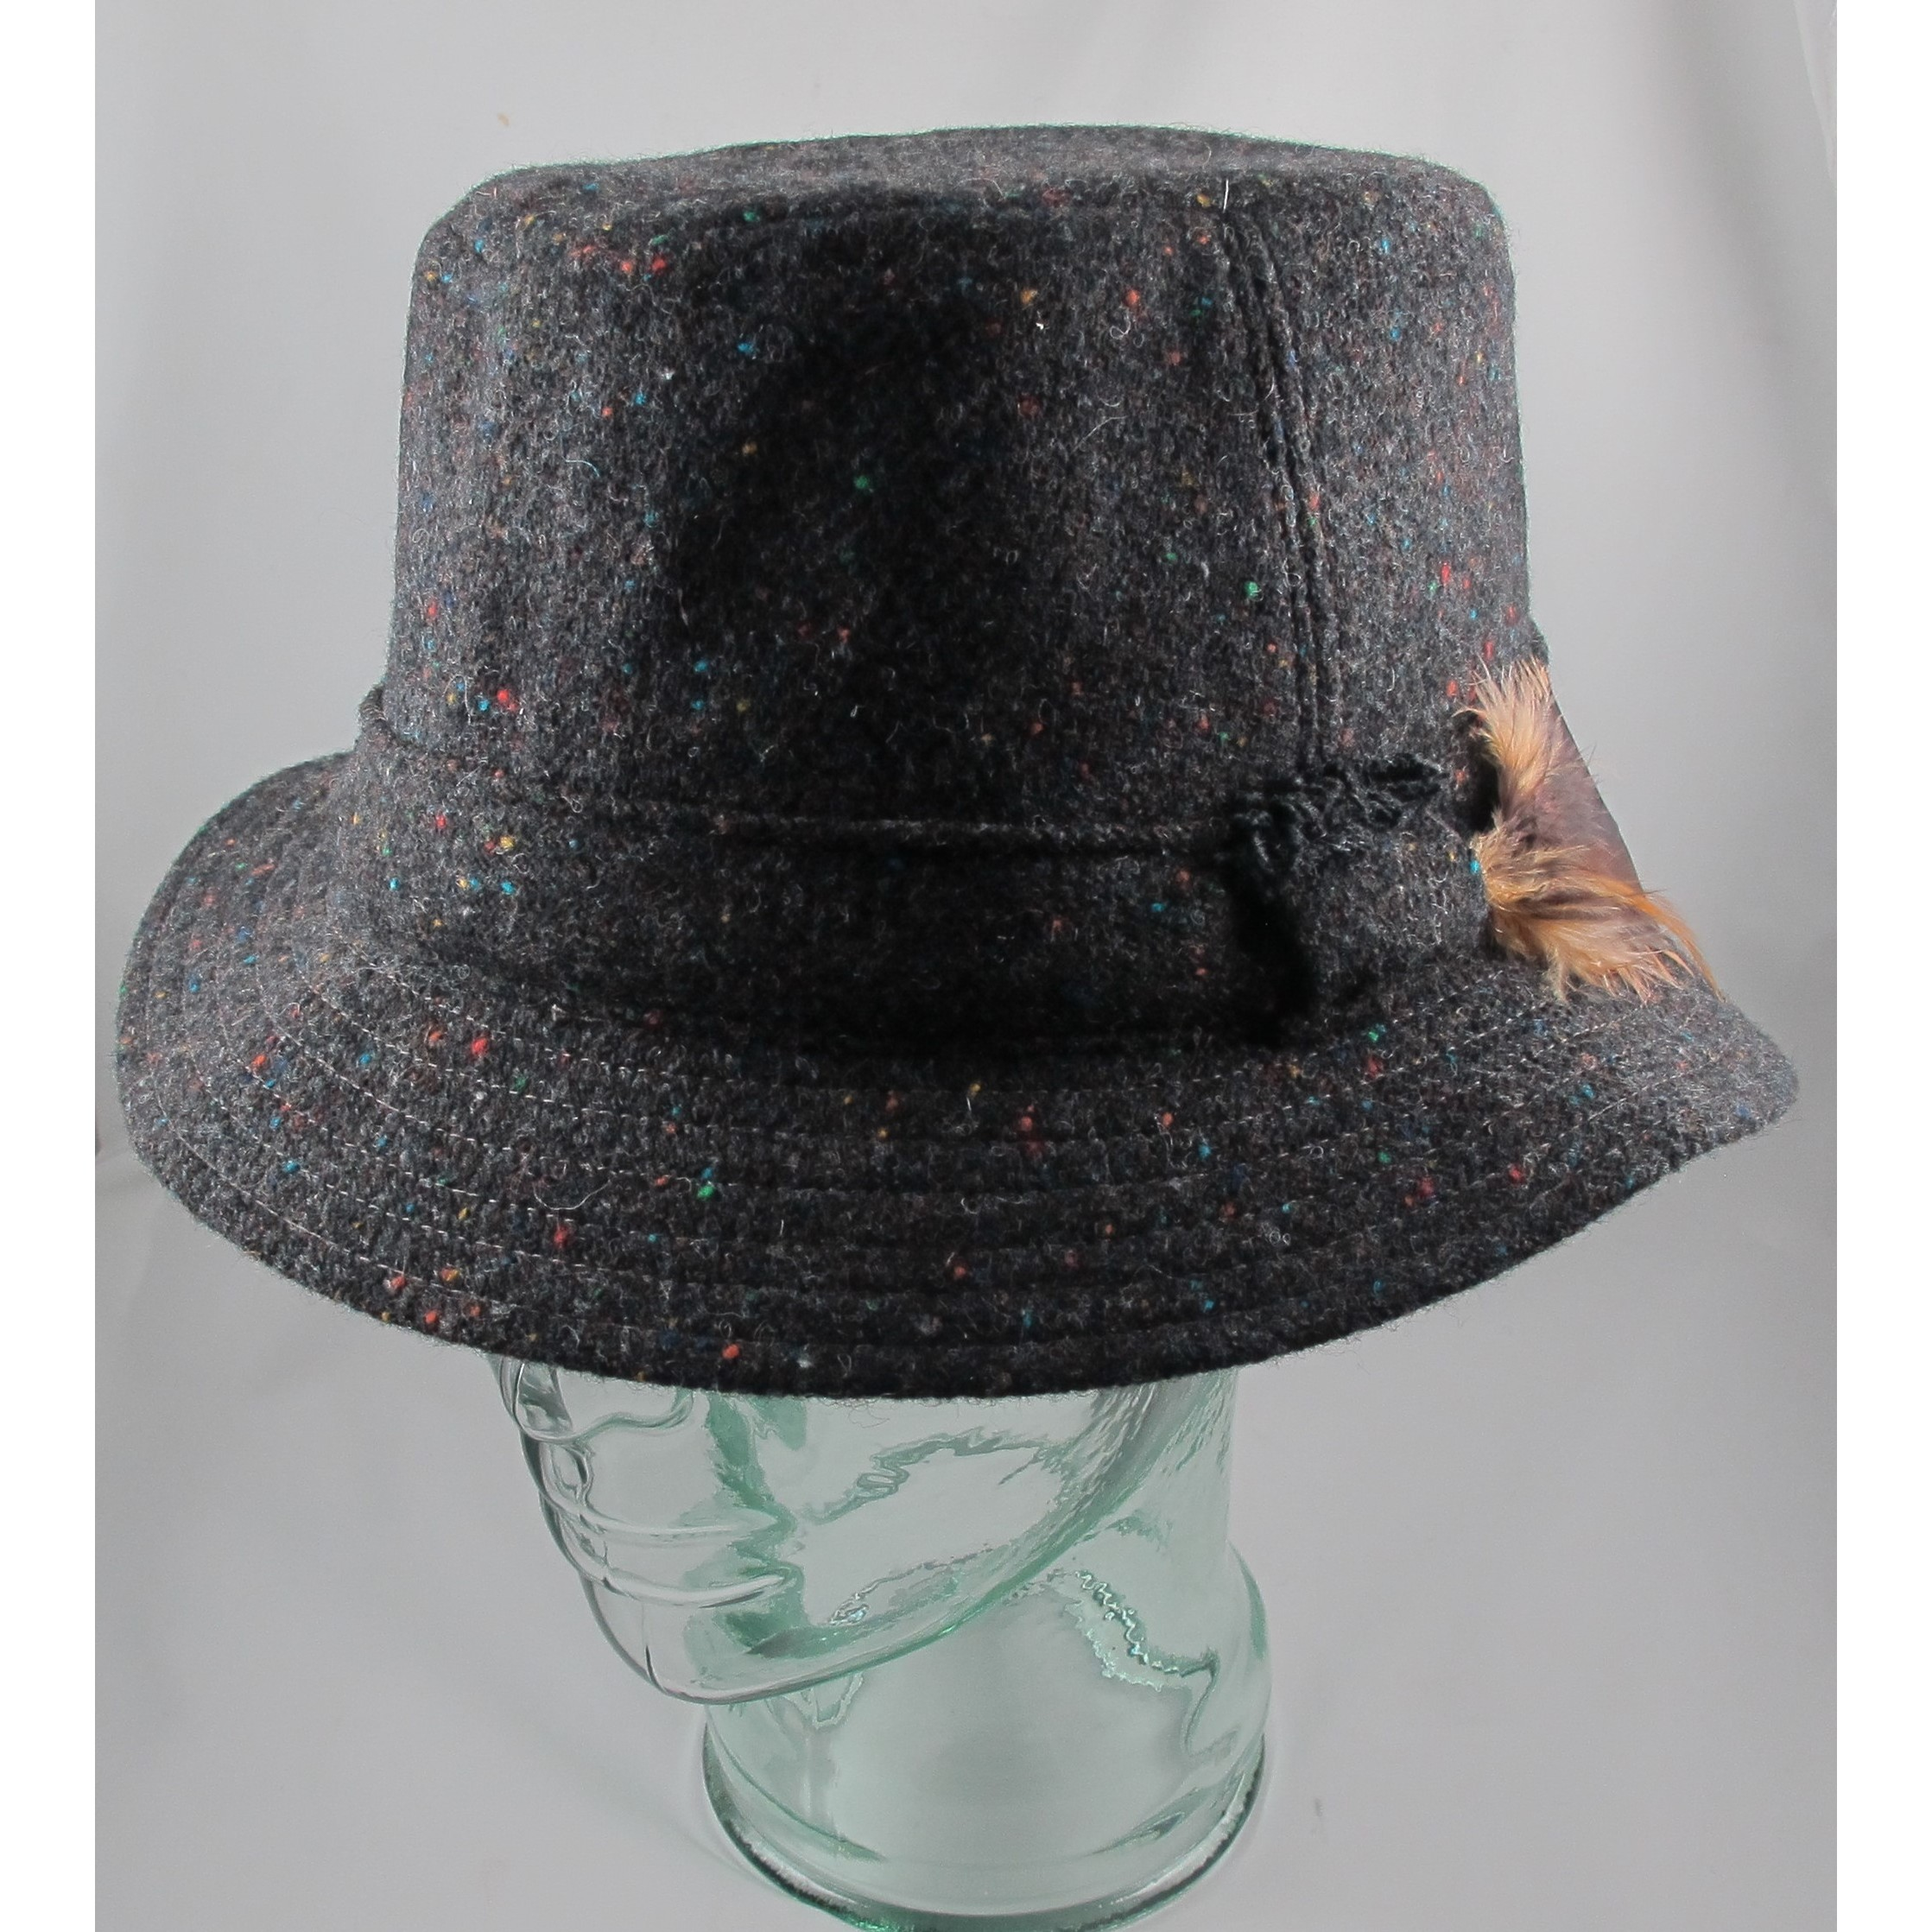 Black Speckled Walking Hat